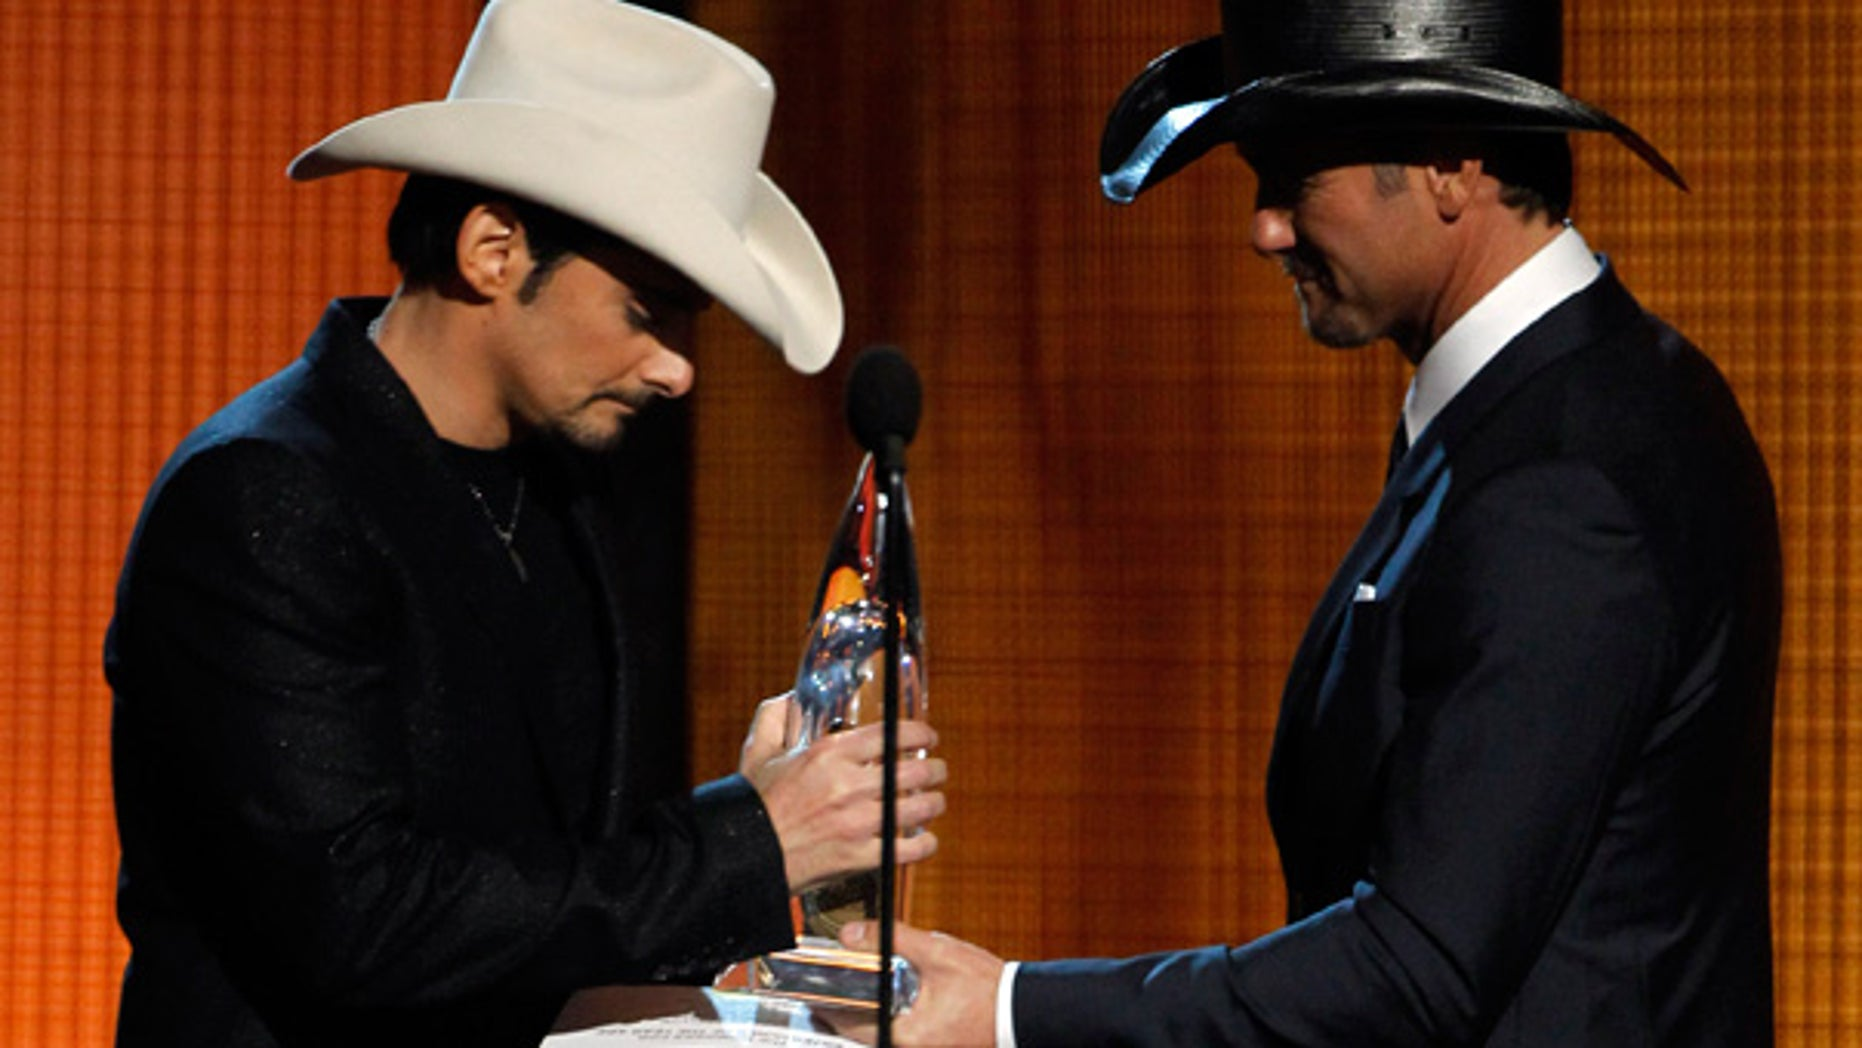 Nov. 10: Brad Paisley, left, accepts the Entertainer of the Year Award from Tim McGraw at the 44th Annual CMAs in Nashville.